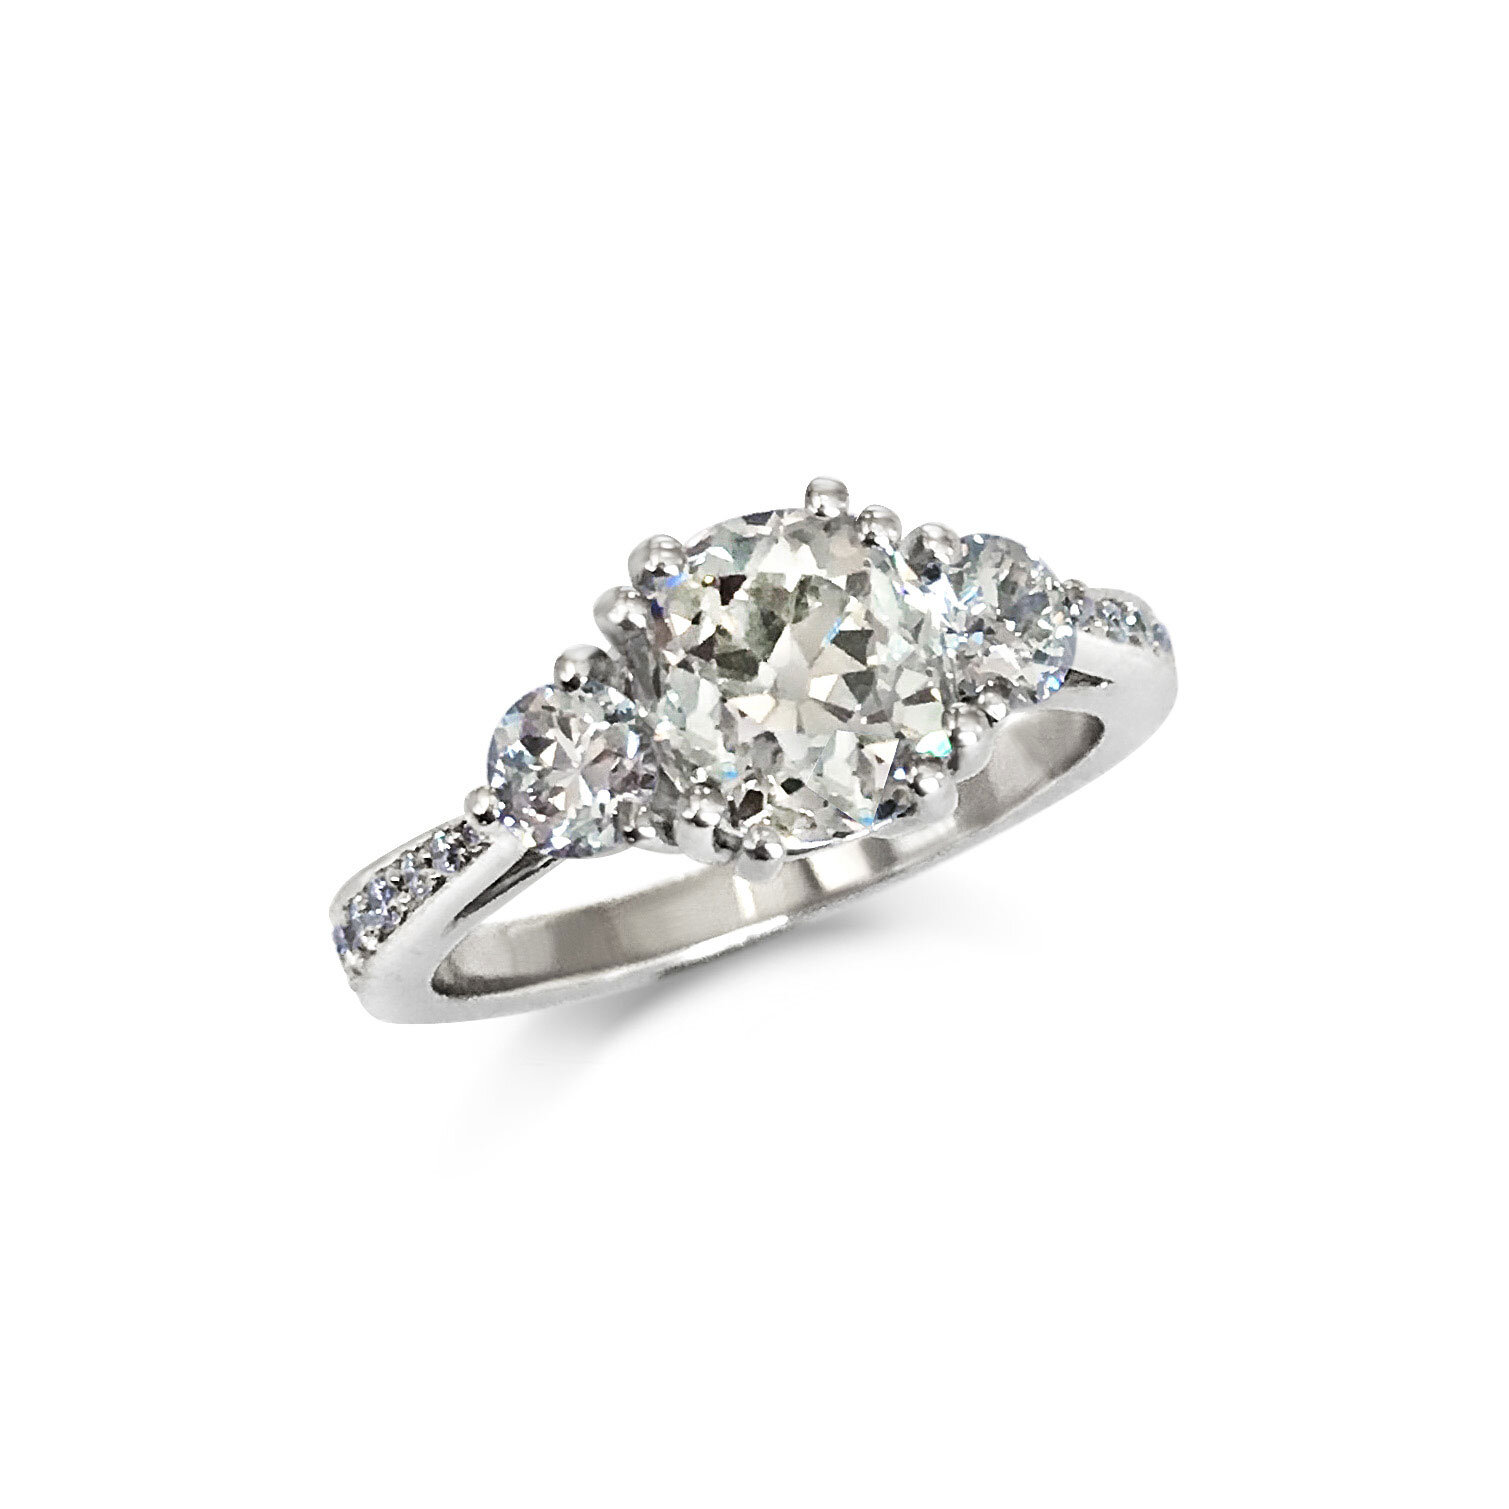 Diamond three-stone engagement ring with a diamond shank mounted in platinum.